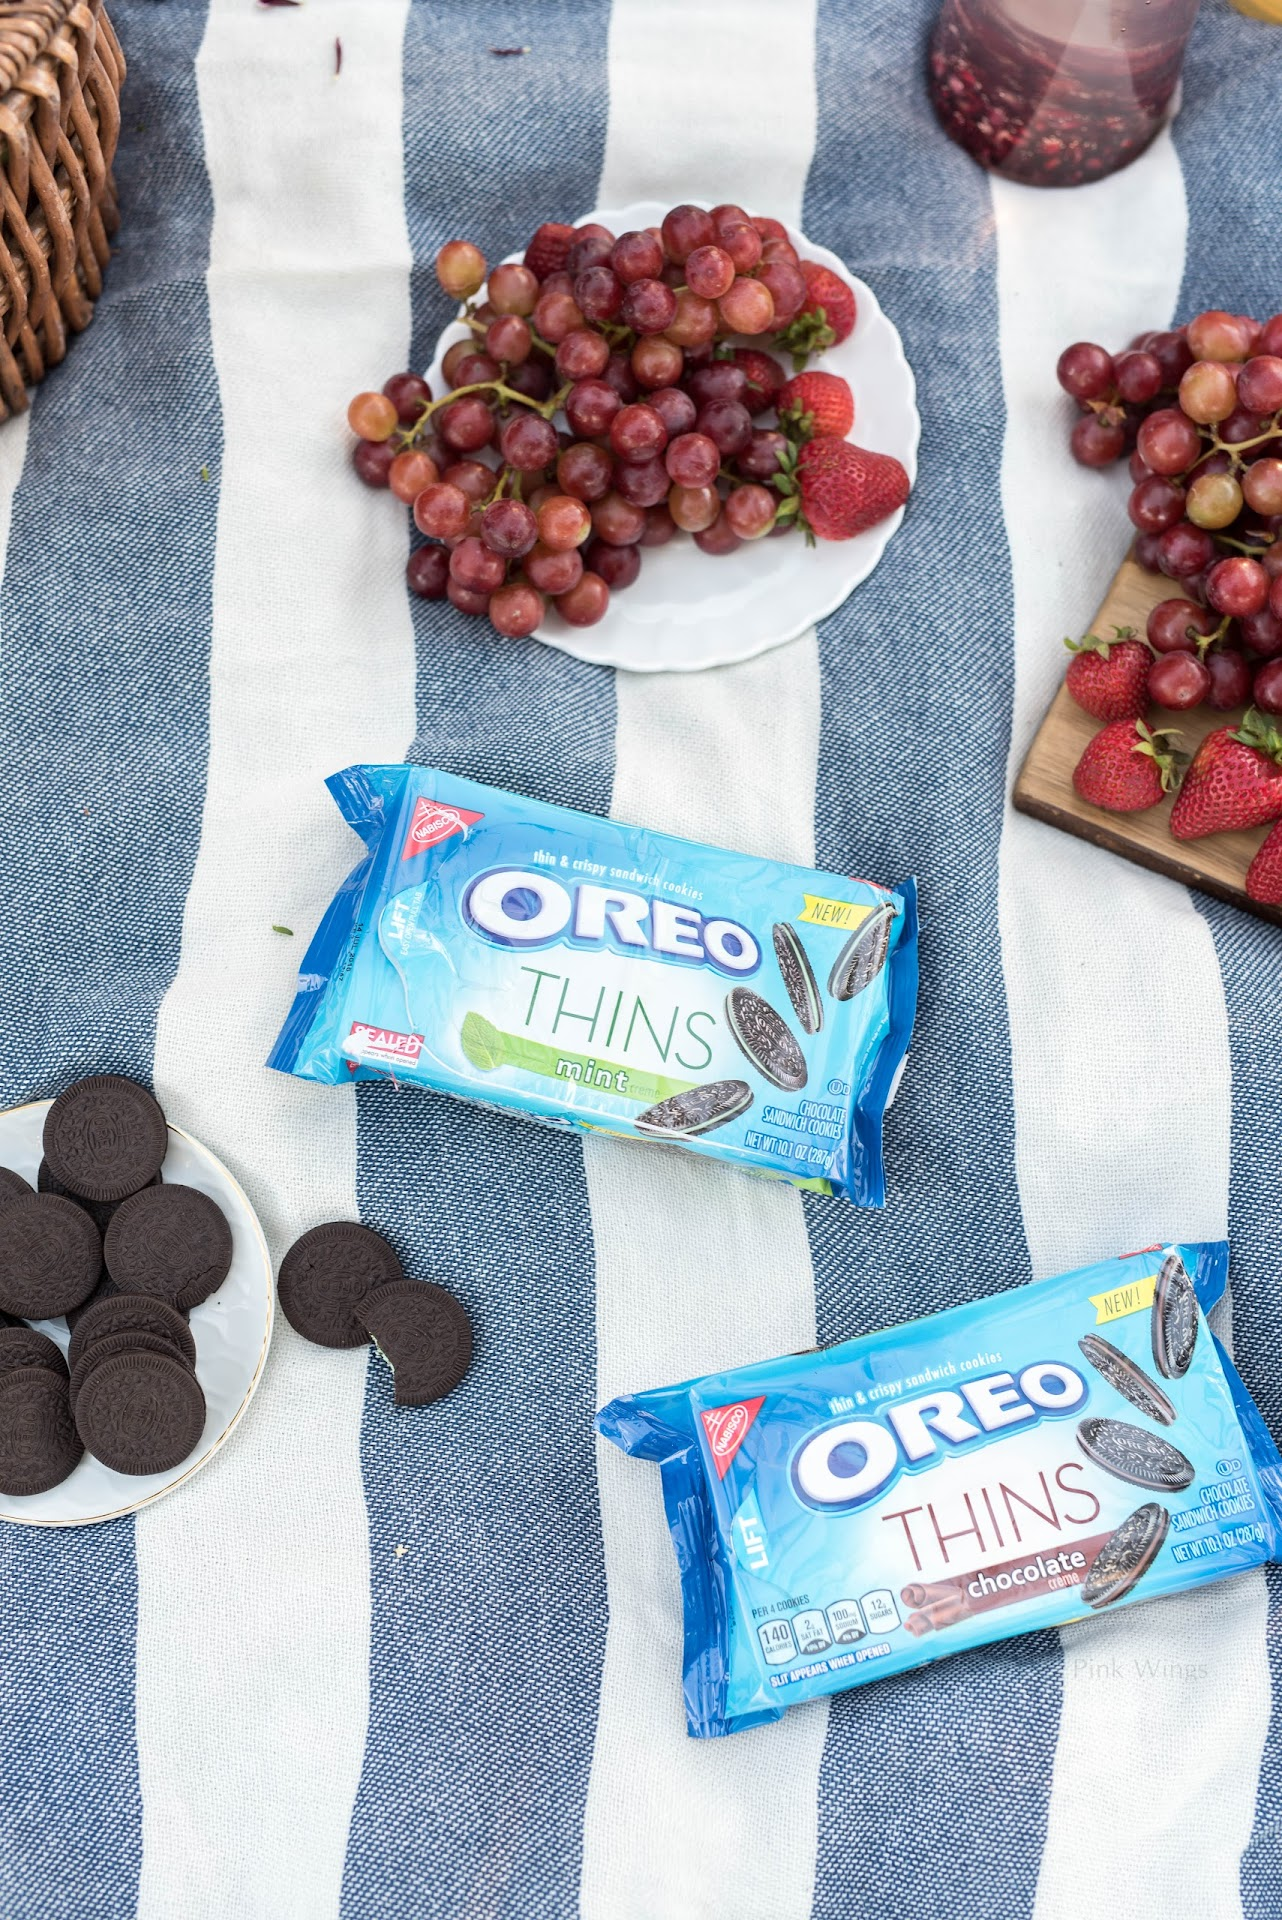 romantic picnic, picnic for two, how to throw the perfect picnic, picnic ideas, where to buy a picnic basket, tips for picnics, picnic blanket, picnic food ideas, picnic dessert, picnic dessert ideas, OREO THINS,